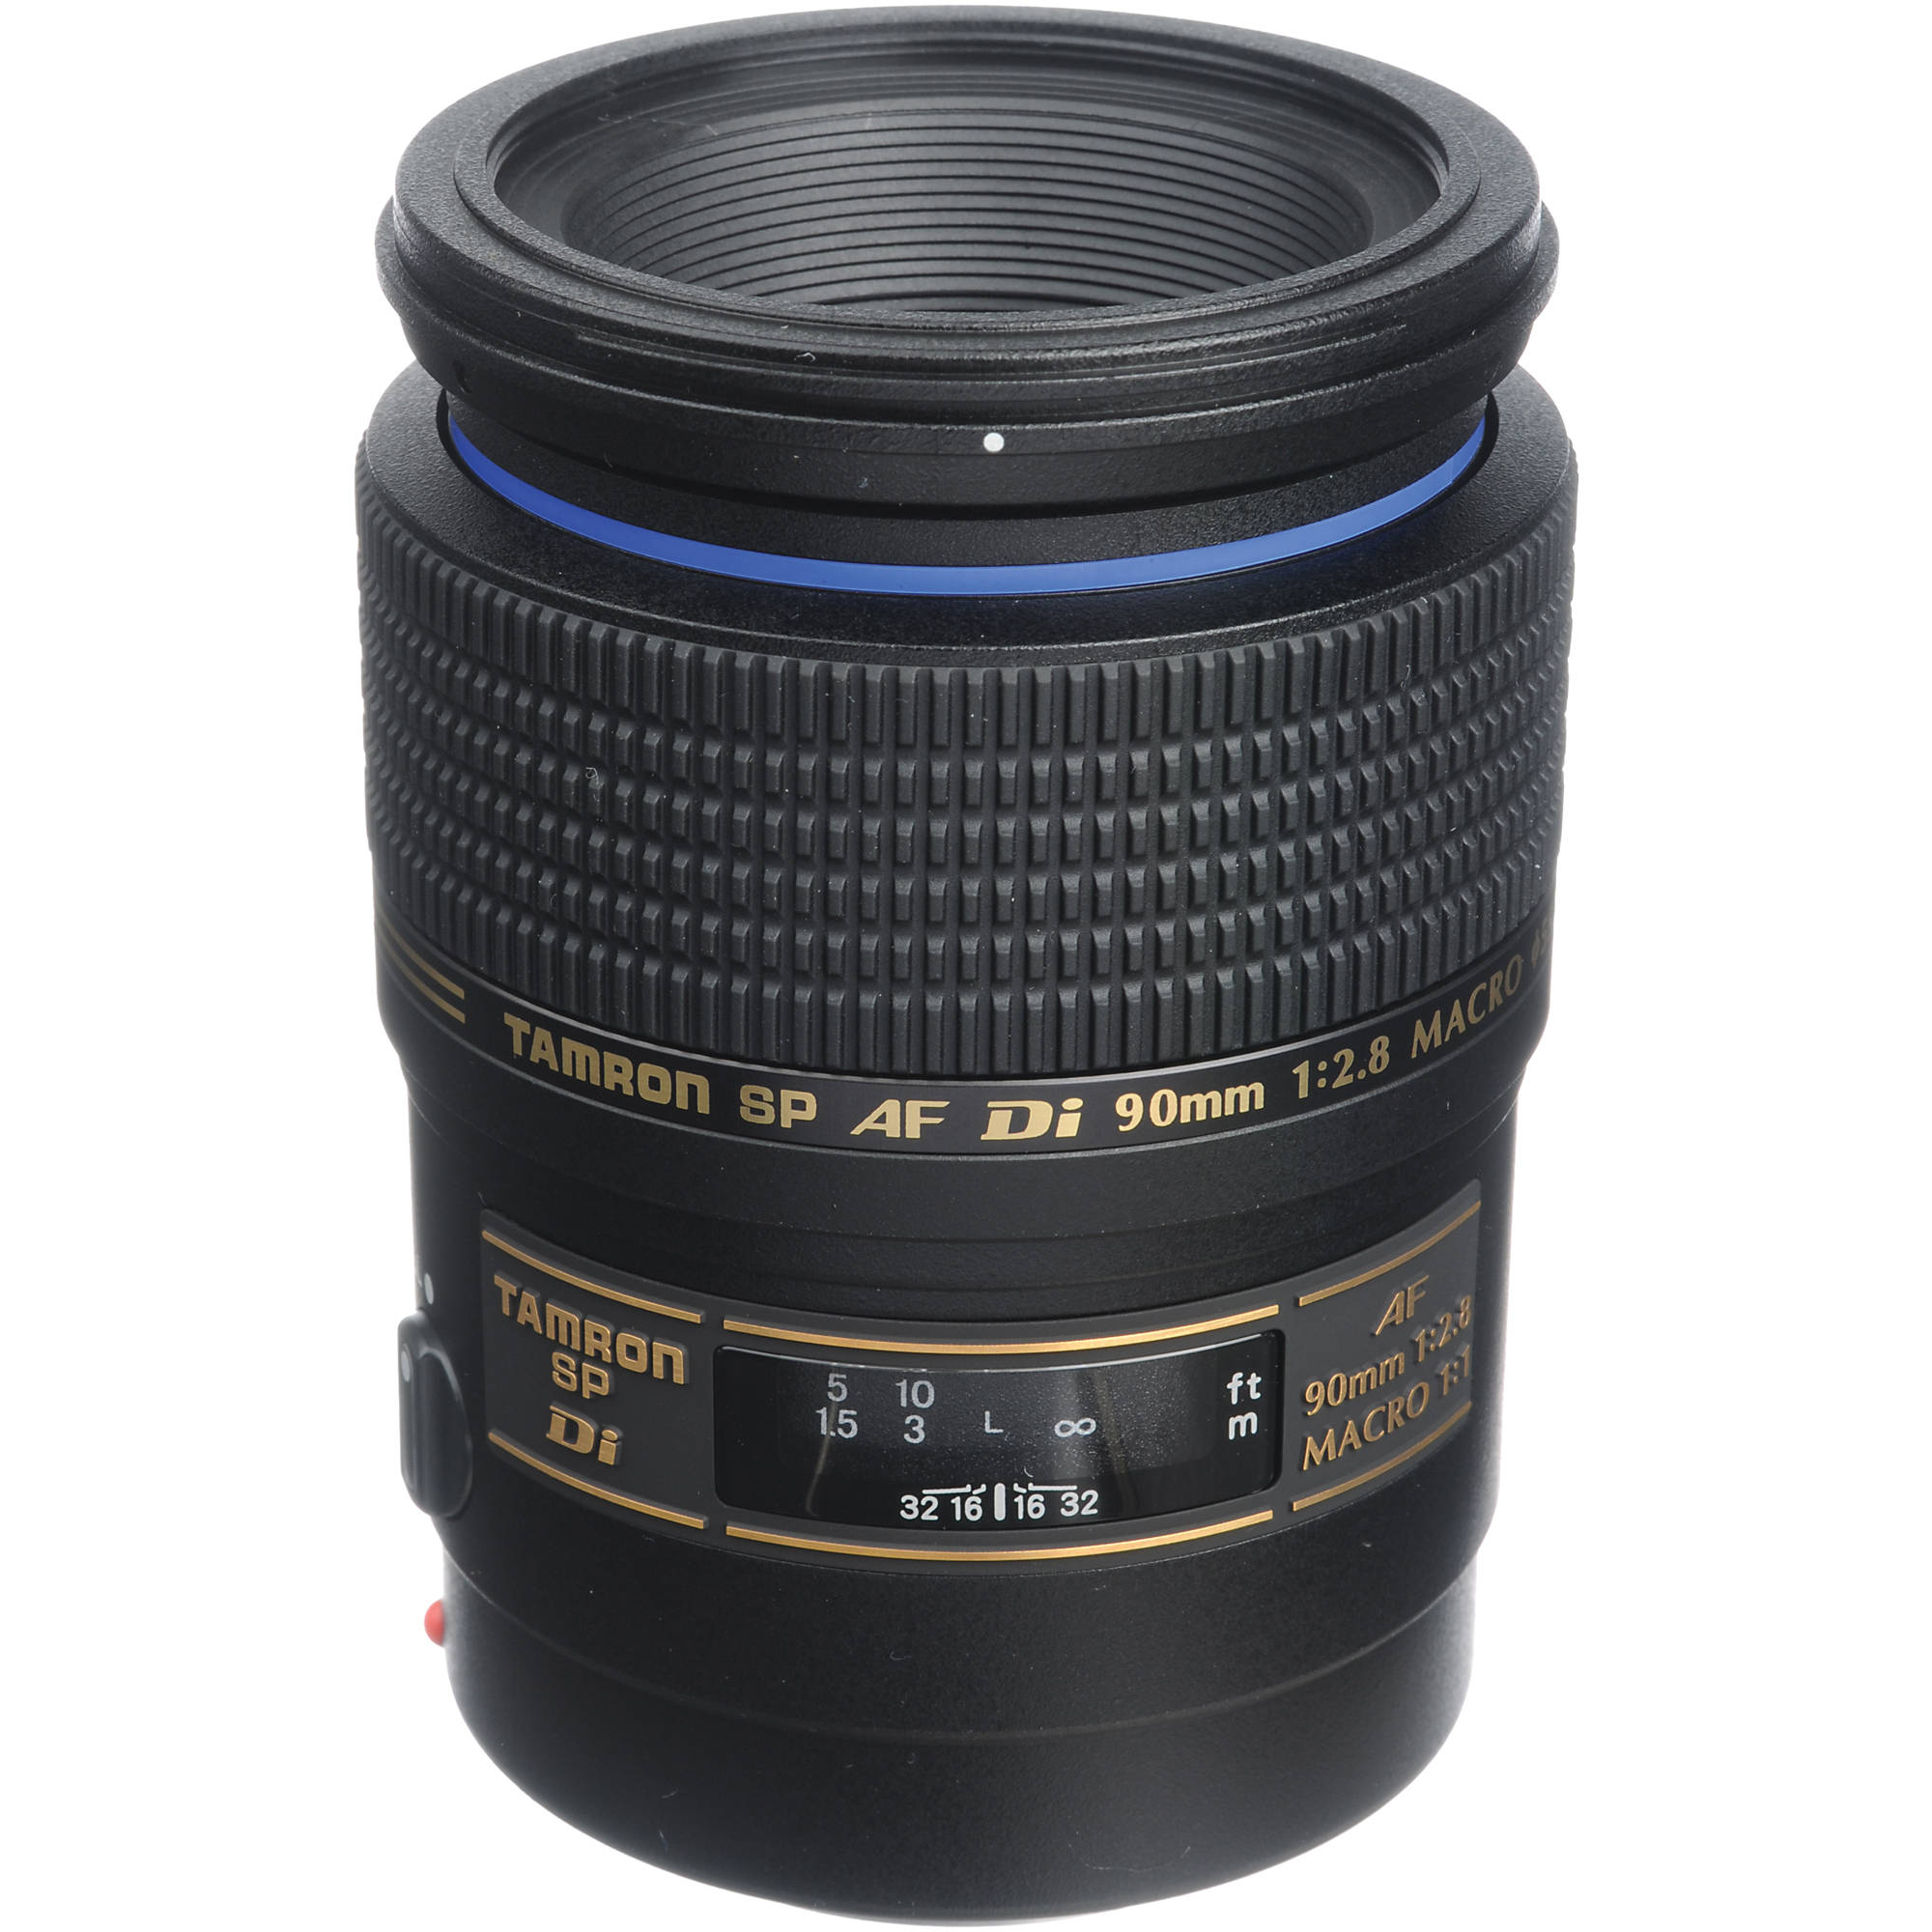 Image of Tamron SP AF 90mm f/2.8 Di Macro 1:1 Lens For Canon Mount